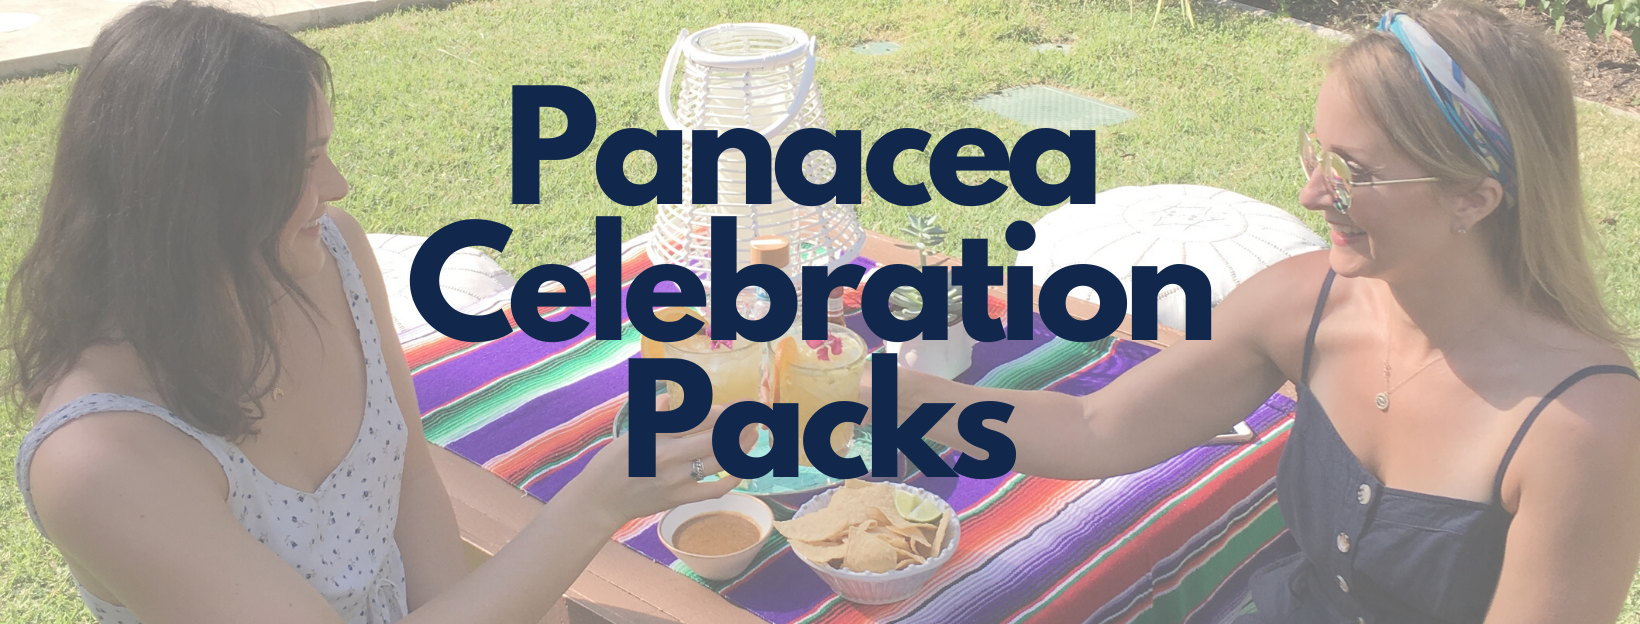 Copy of Panacea Celebration Packs (3).png